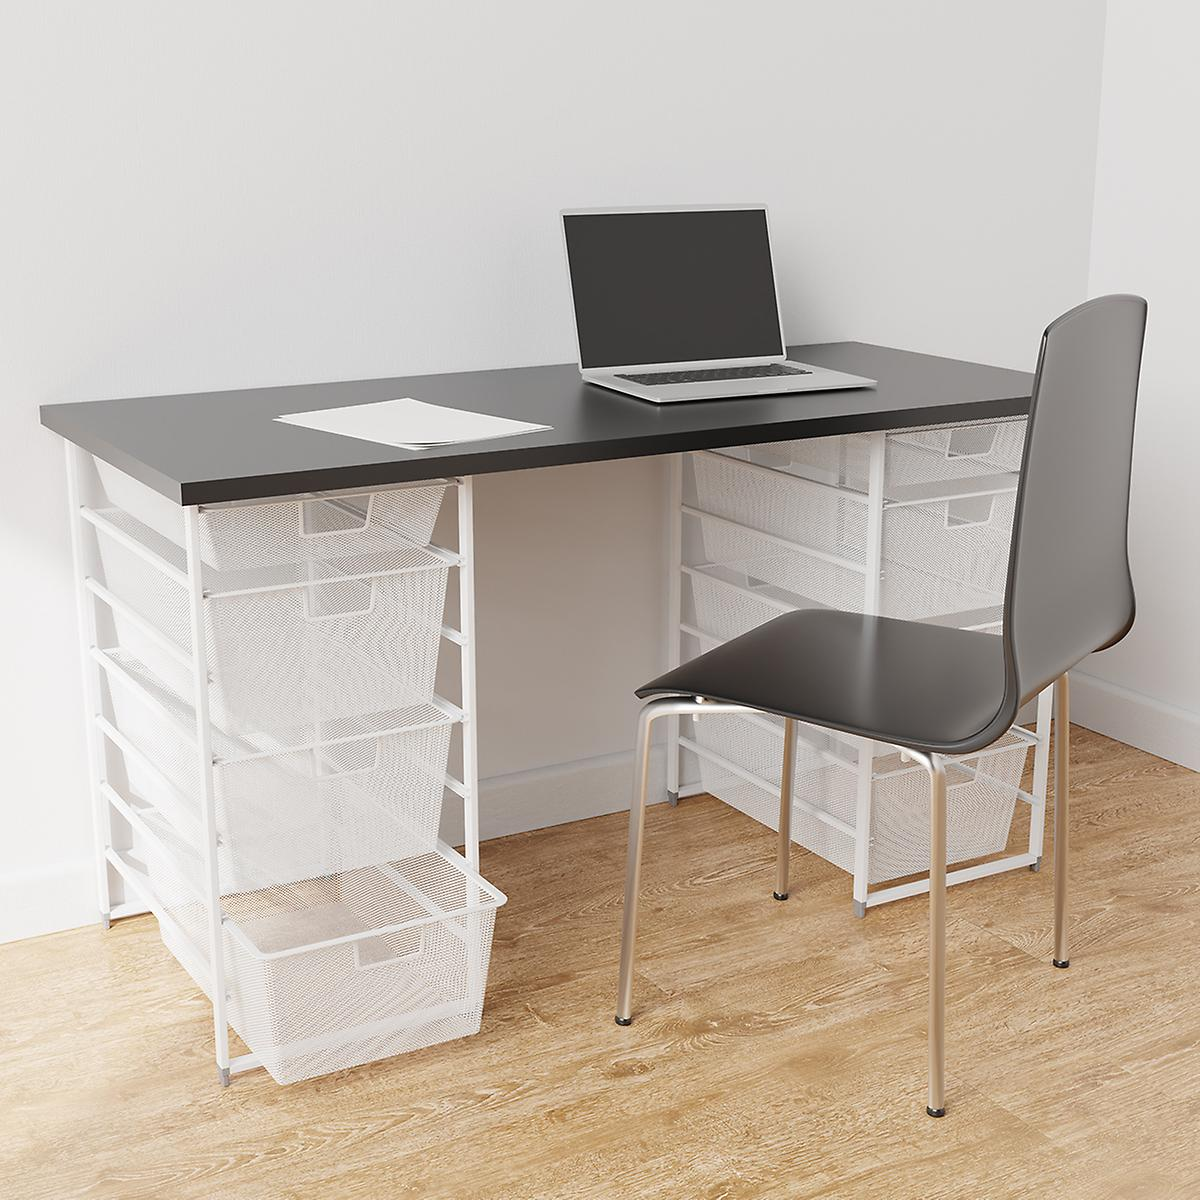 Elfa Slate & White Desk with Double Drawers